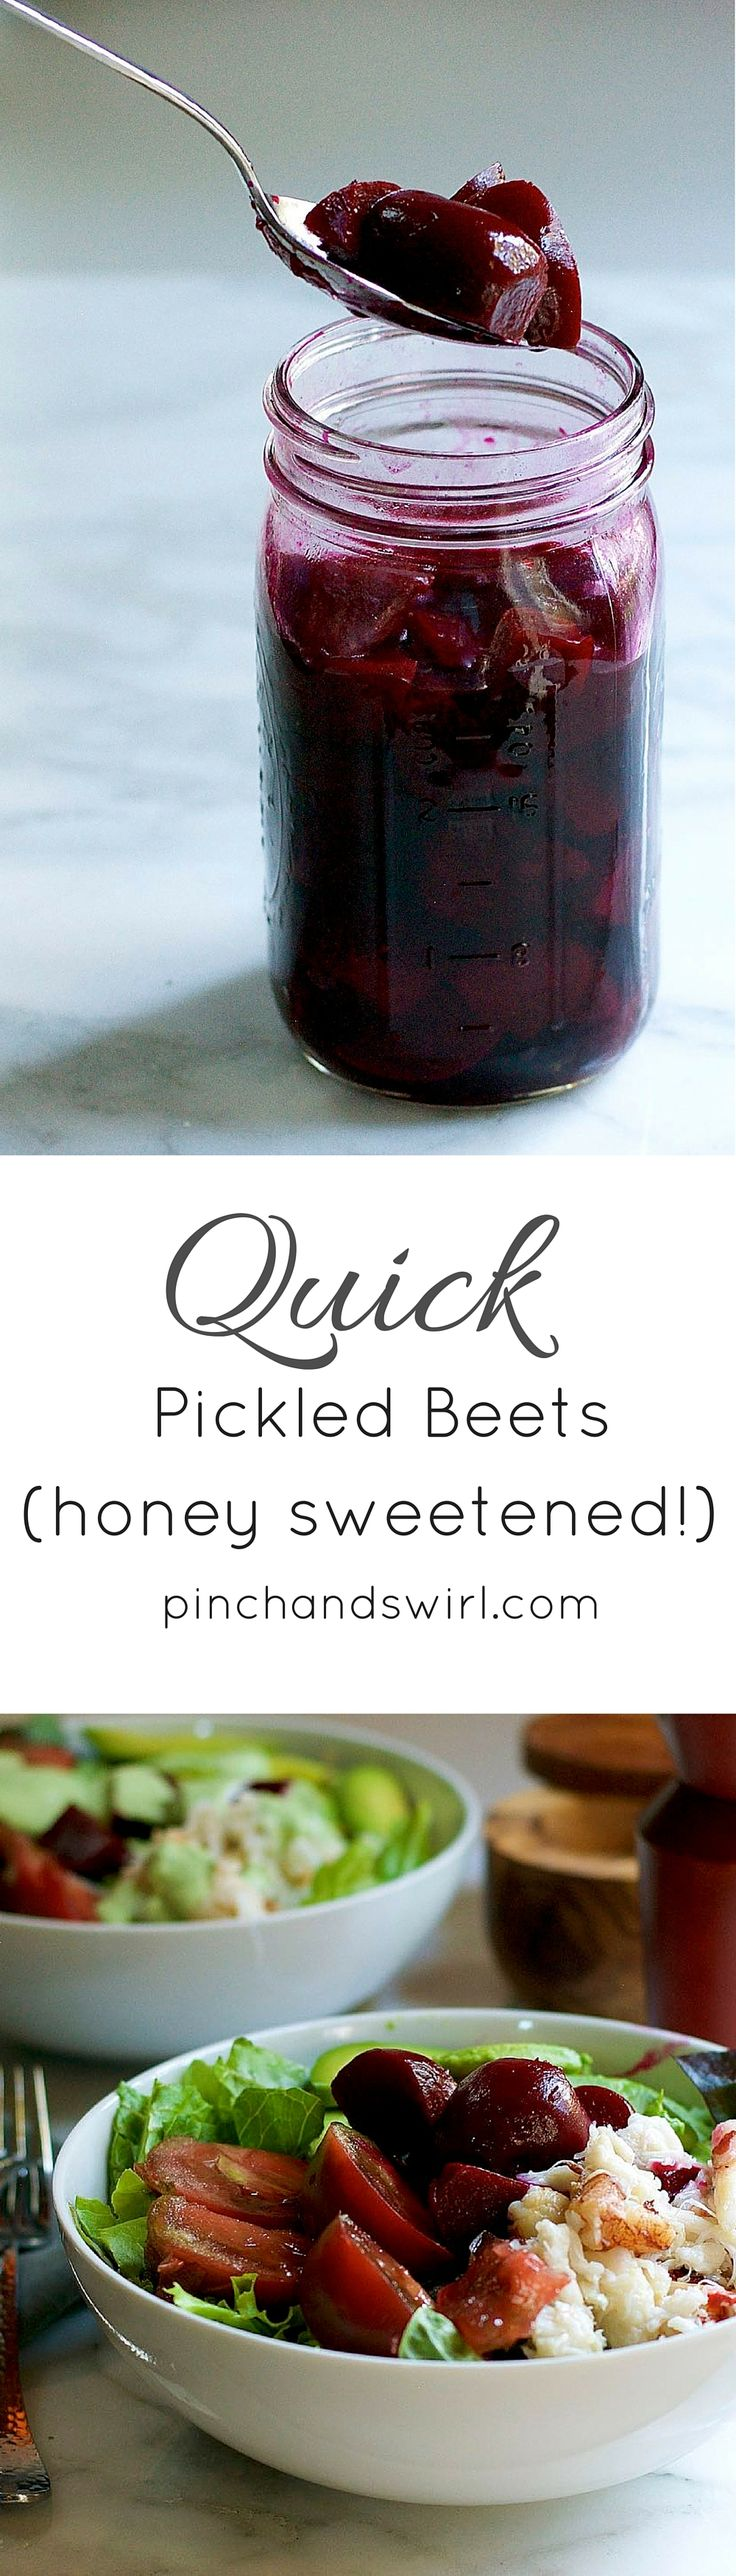 Easy Pickled Beets - just beets, apple cider vinegar, water, honey, salt and pepper! Such a delicious way to top all of your salads this summer! via @pinchandswirl #easyrecipe #beets